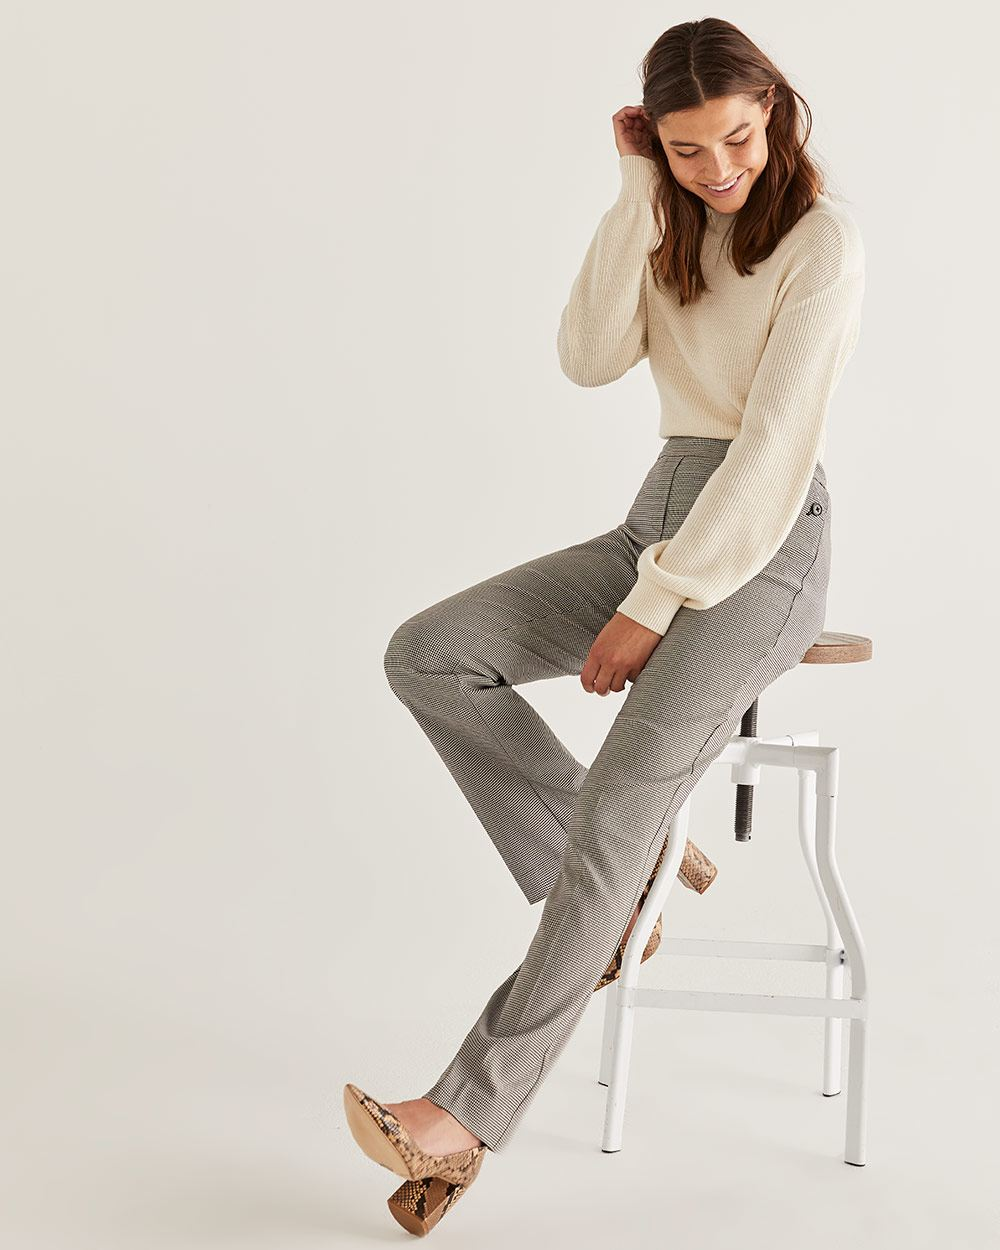 The Iconic Bootcut Pull On Houndstooth Pants - Petite